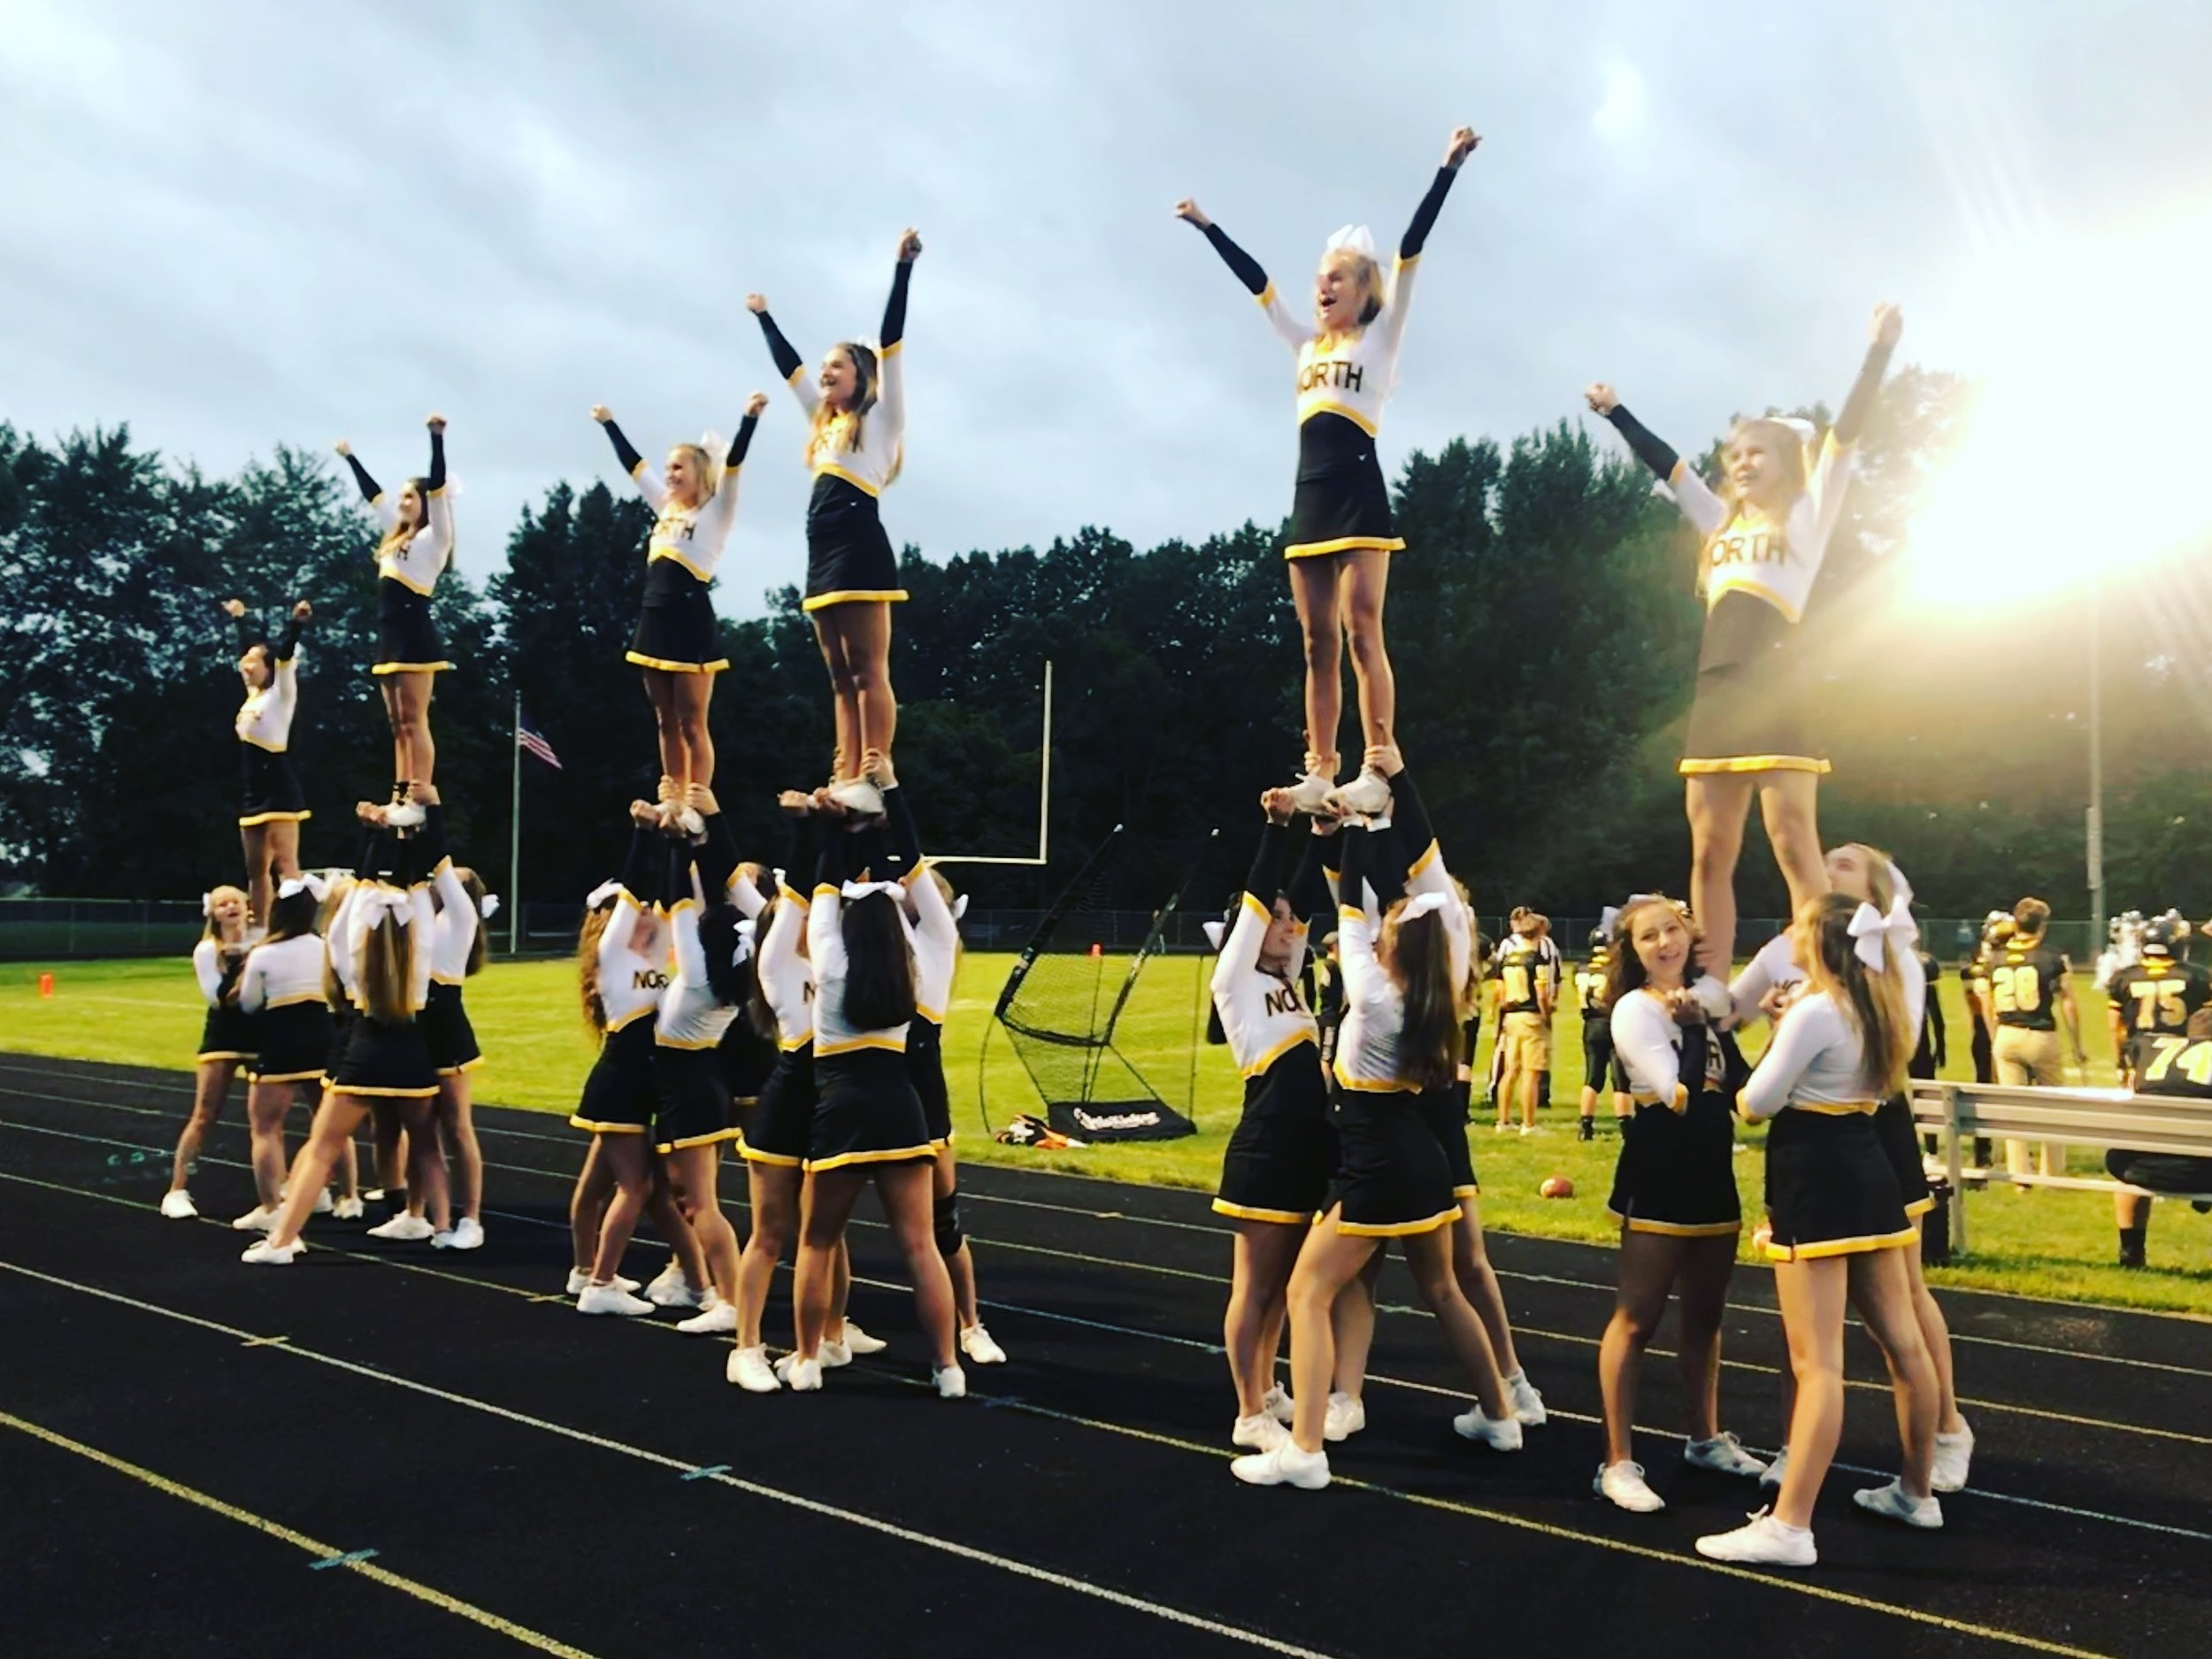 Cheer Camp - September 9,11,13